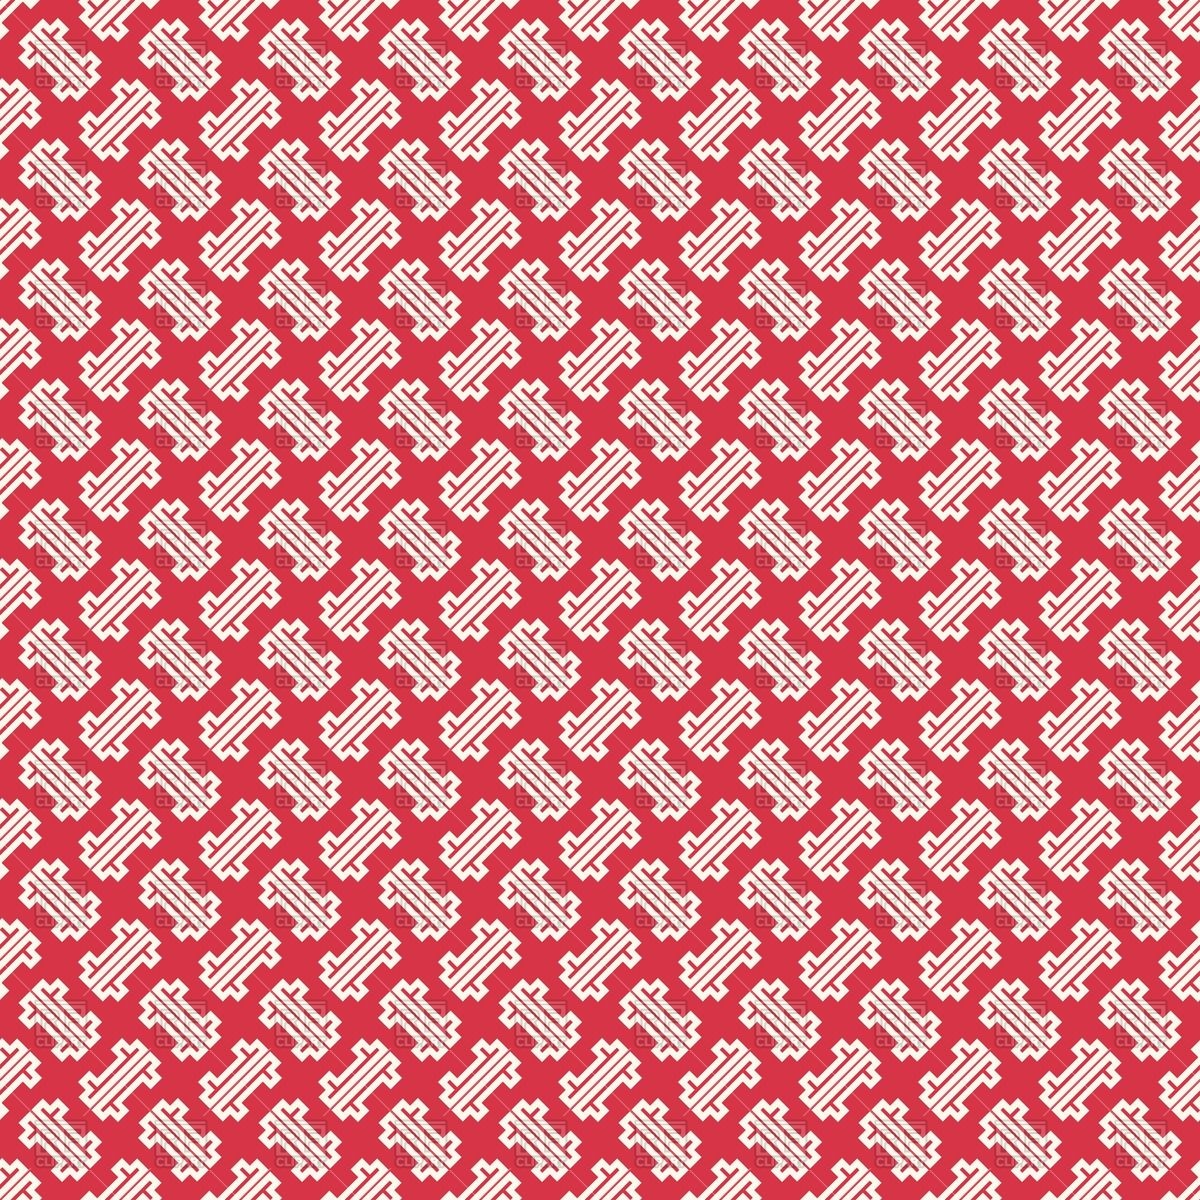 Abstract chinese textile wallpaper Vector Image #41077.